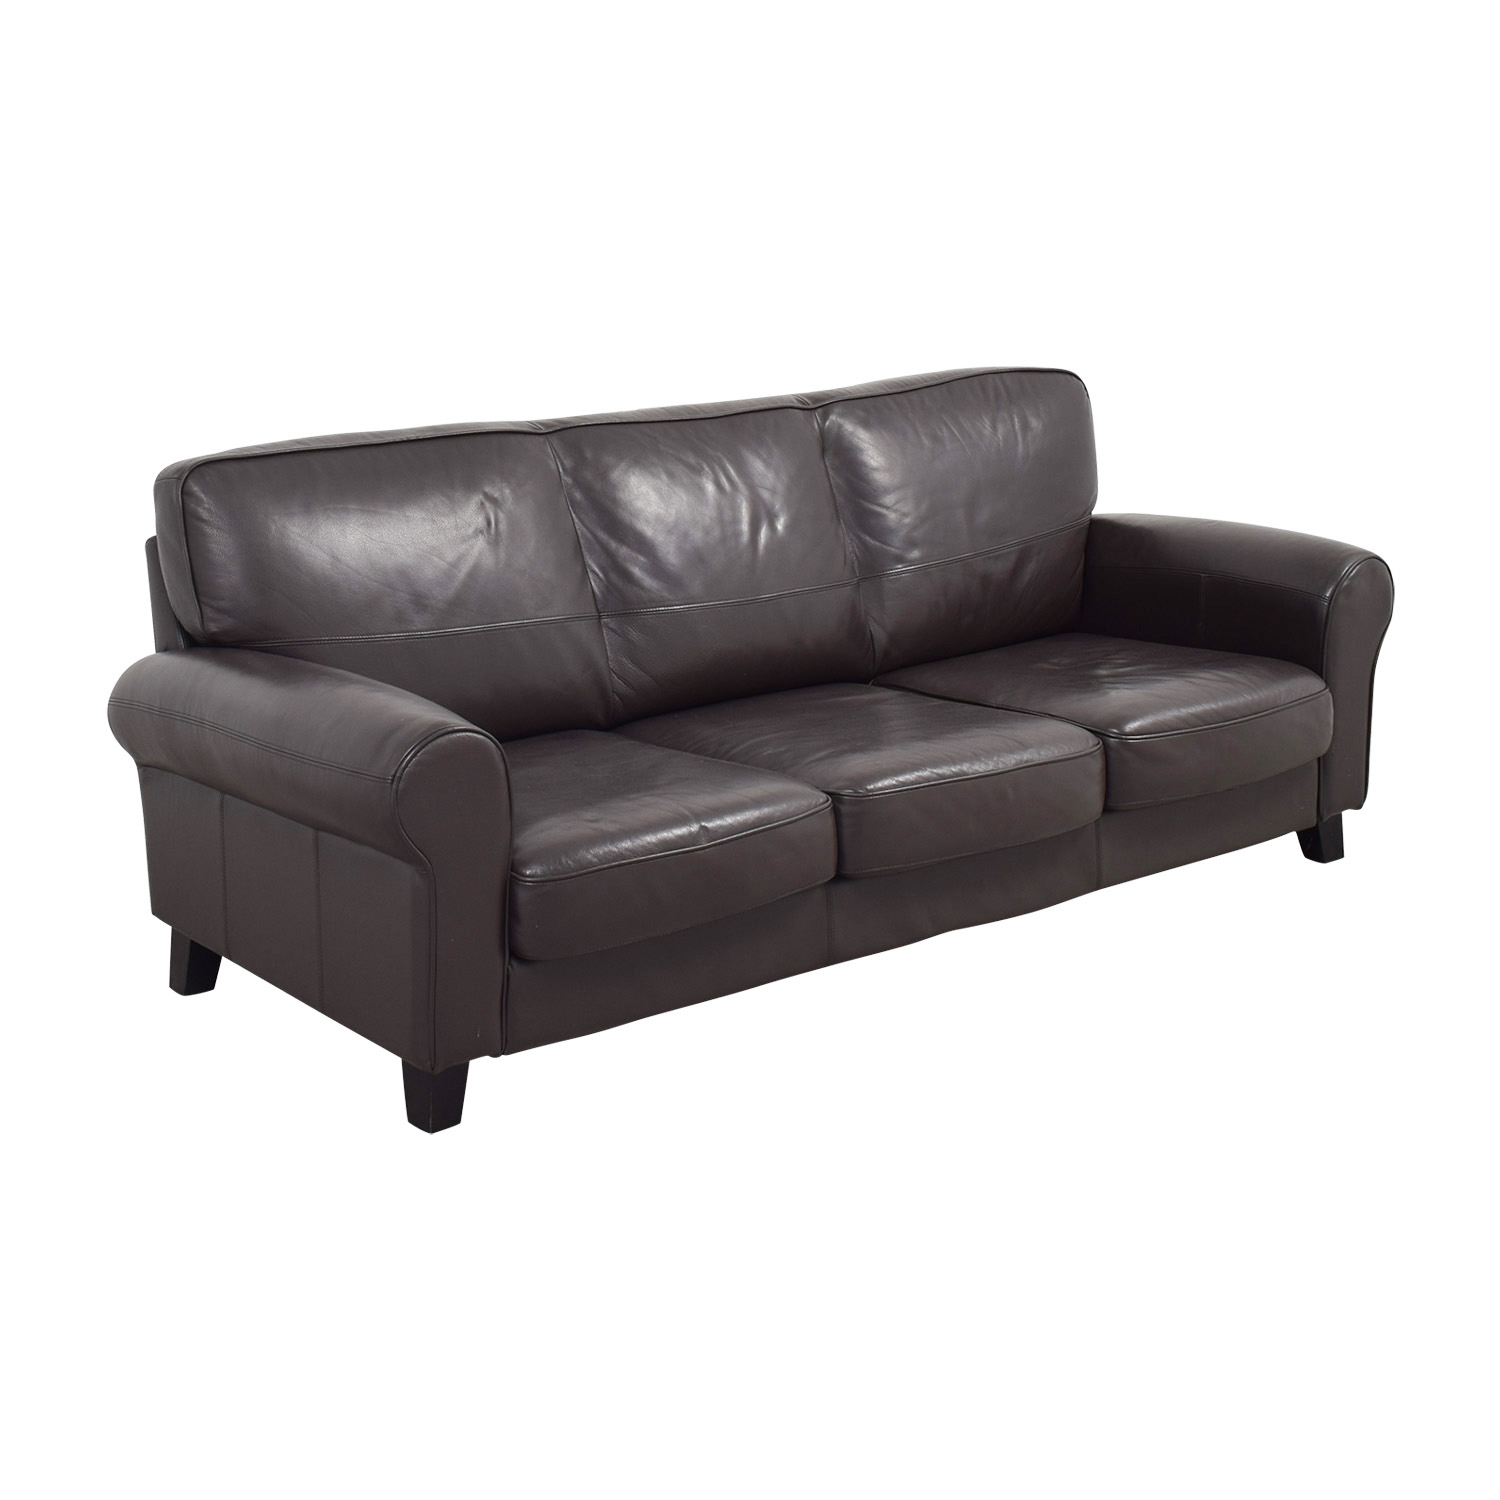 Ikea Sofa Säter Ikea Brown Leather Sofa Home Decor 88